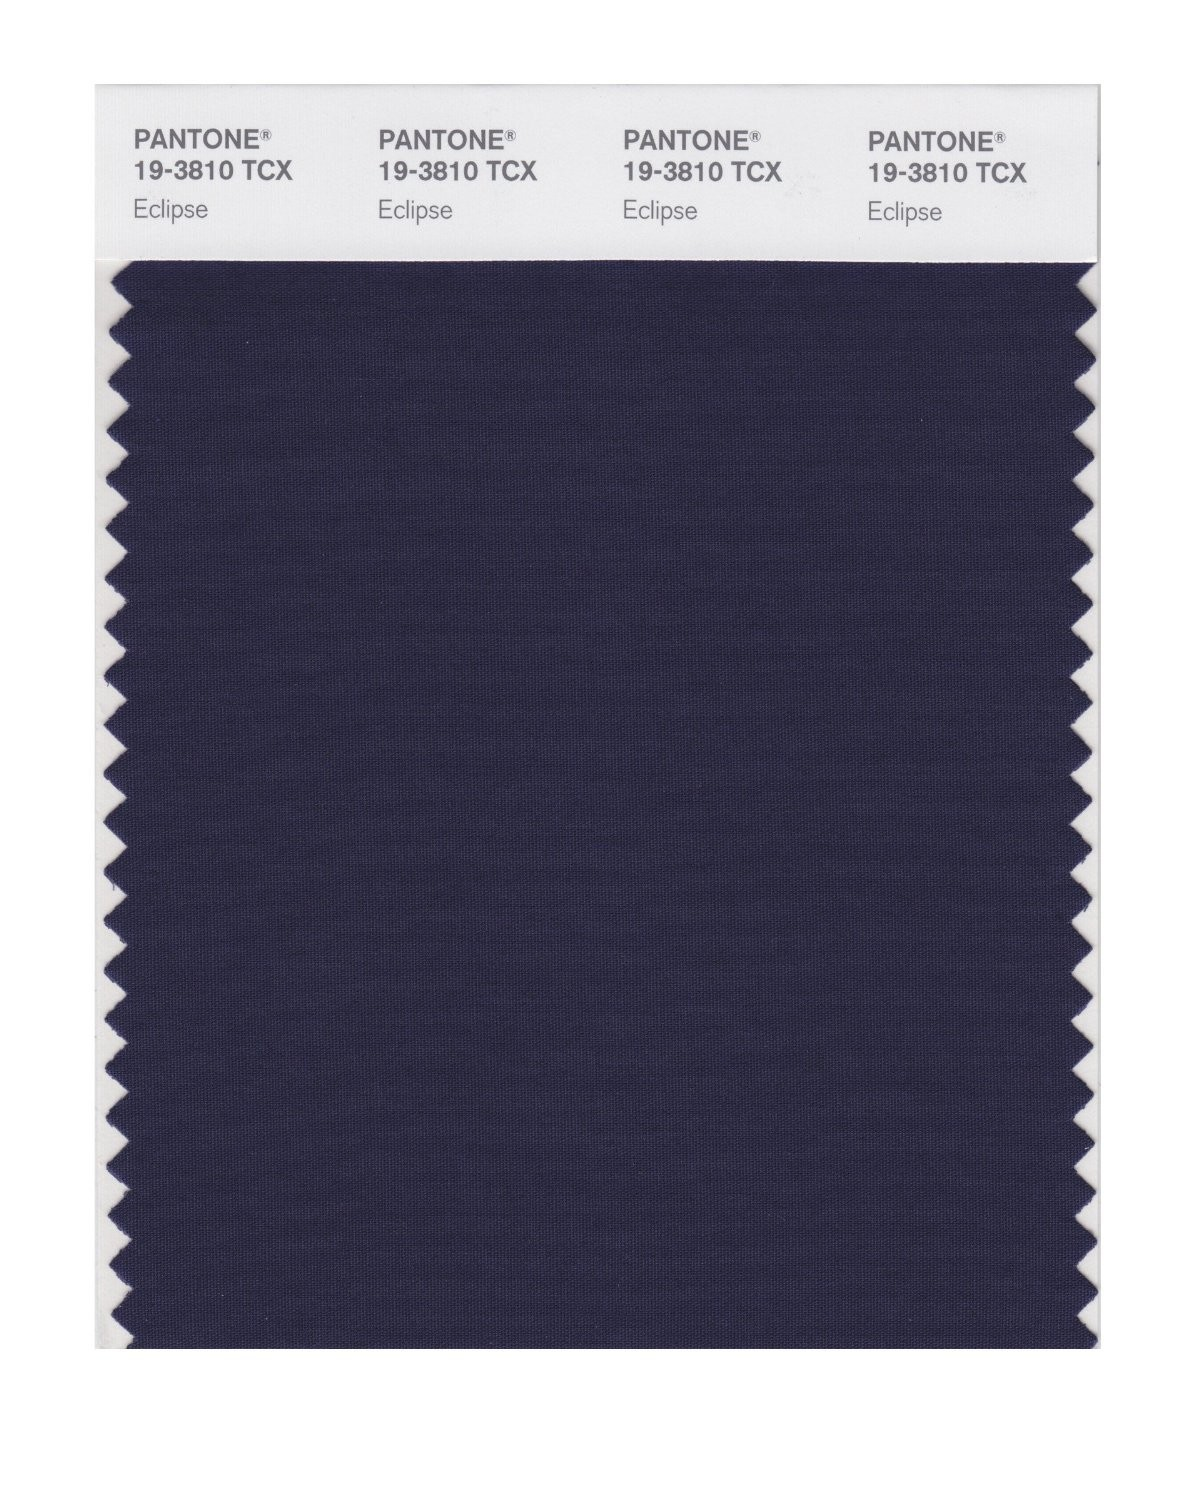 Pantone 19-3810 TCX Swatch Card Eclipse